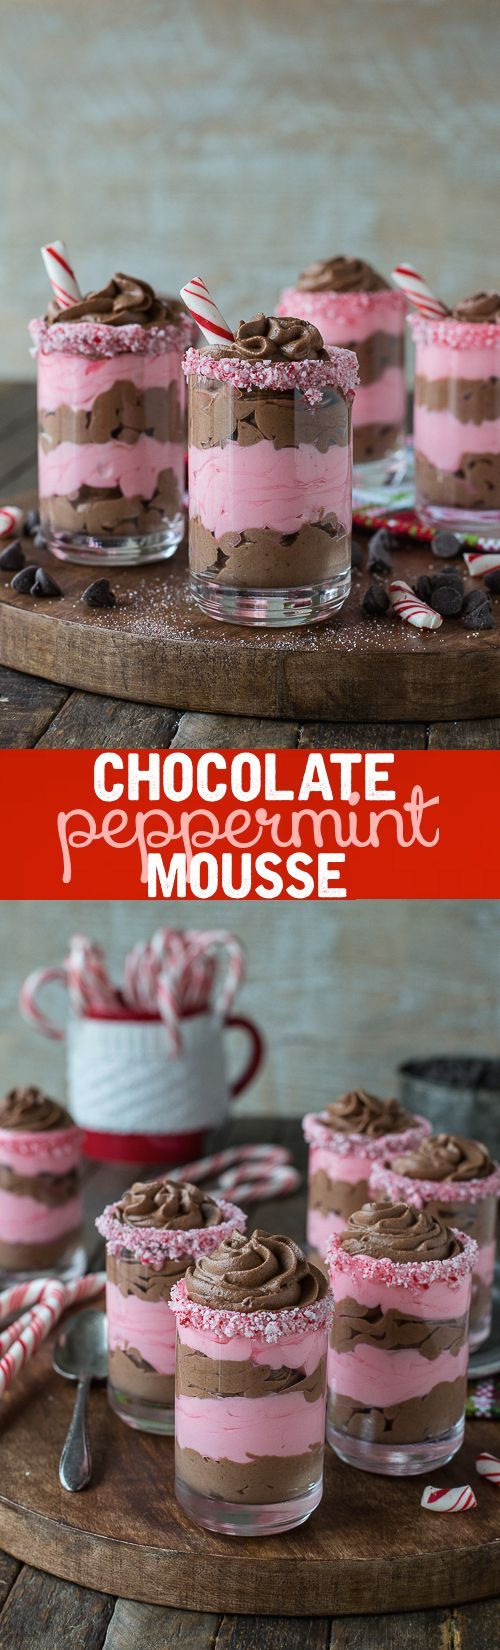 Layered chocolate peppermint mousse in dessert glasses! This is the best mousse and it's eggless!